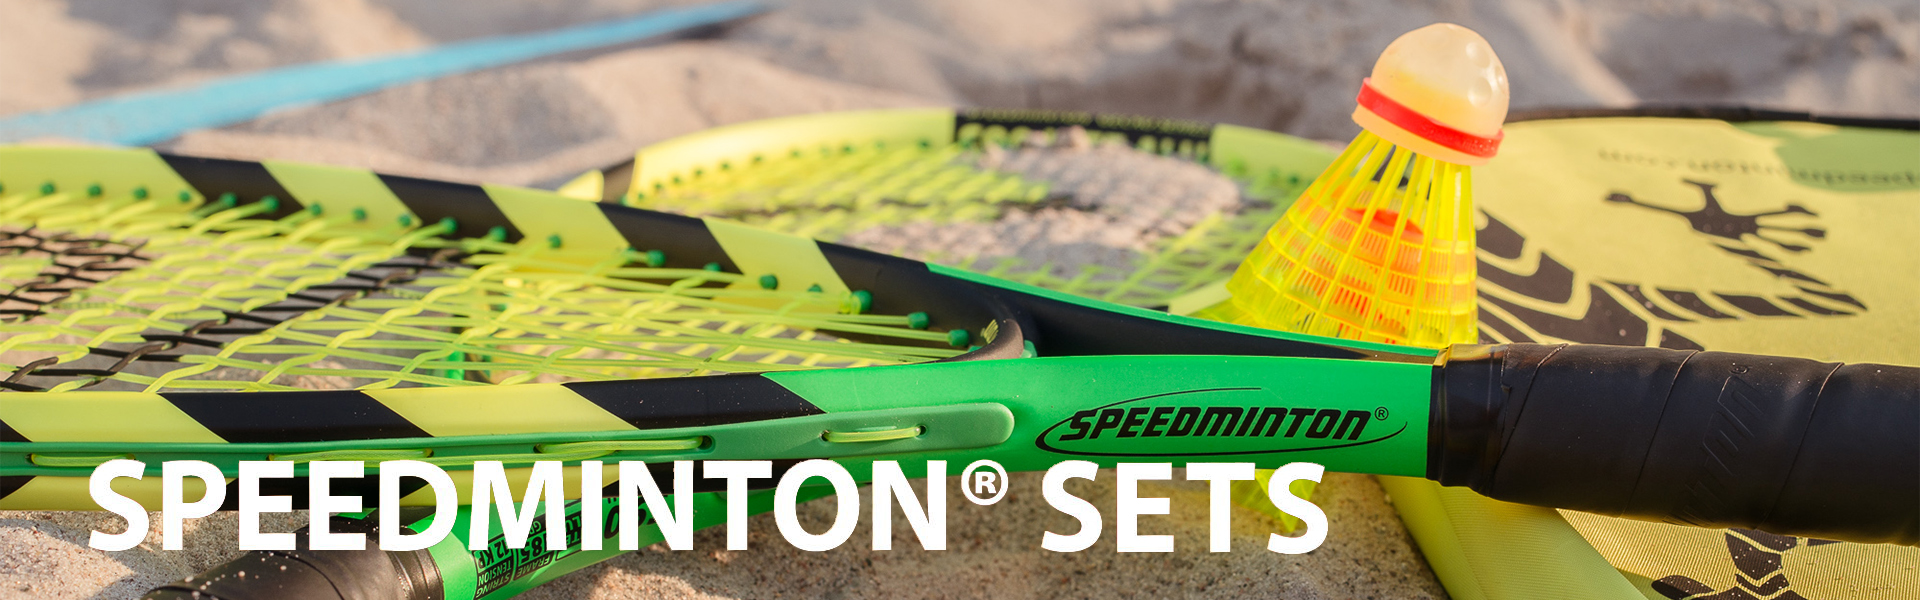 speedminton sets